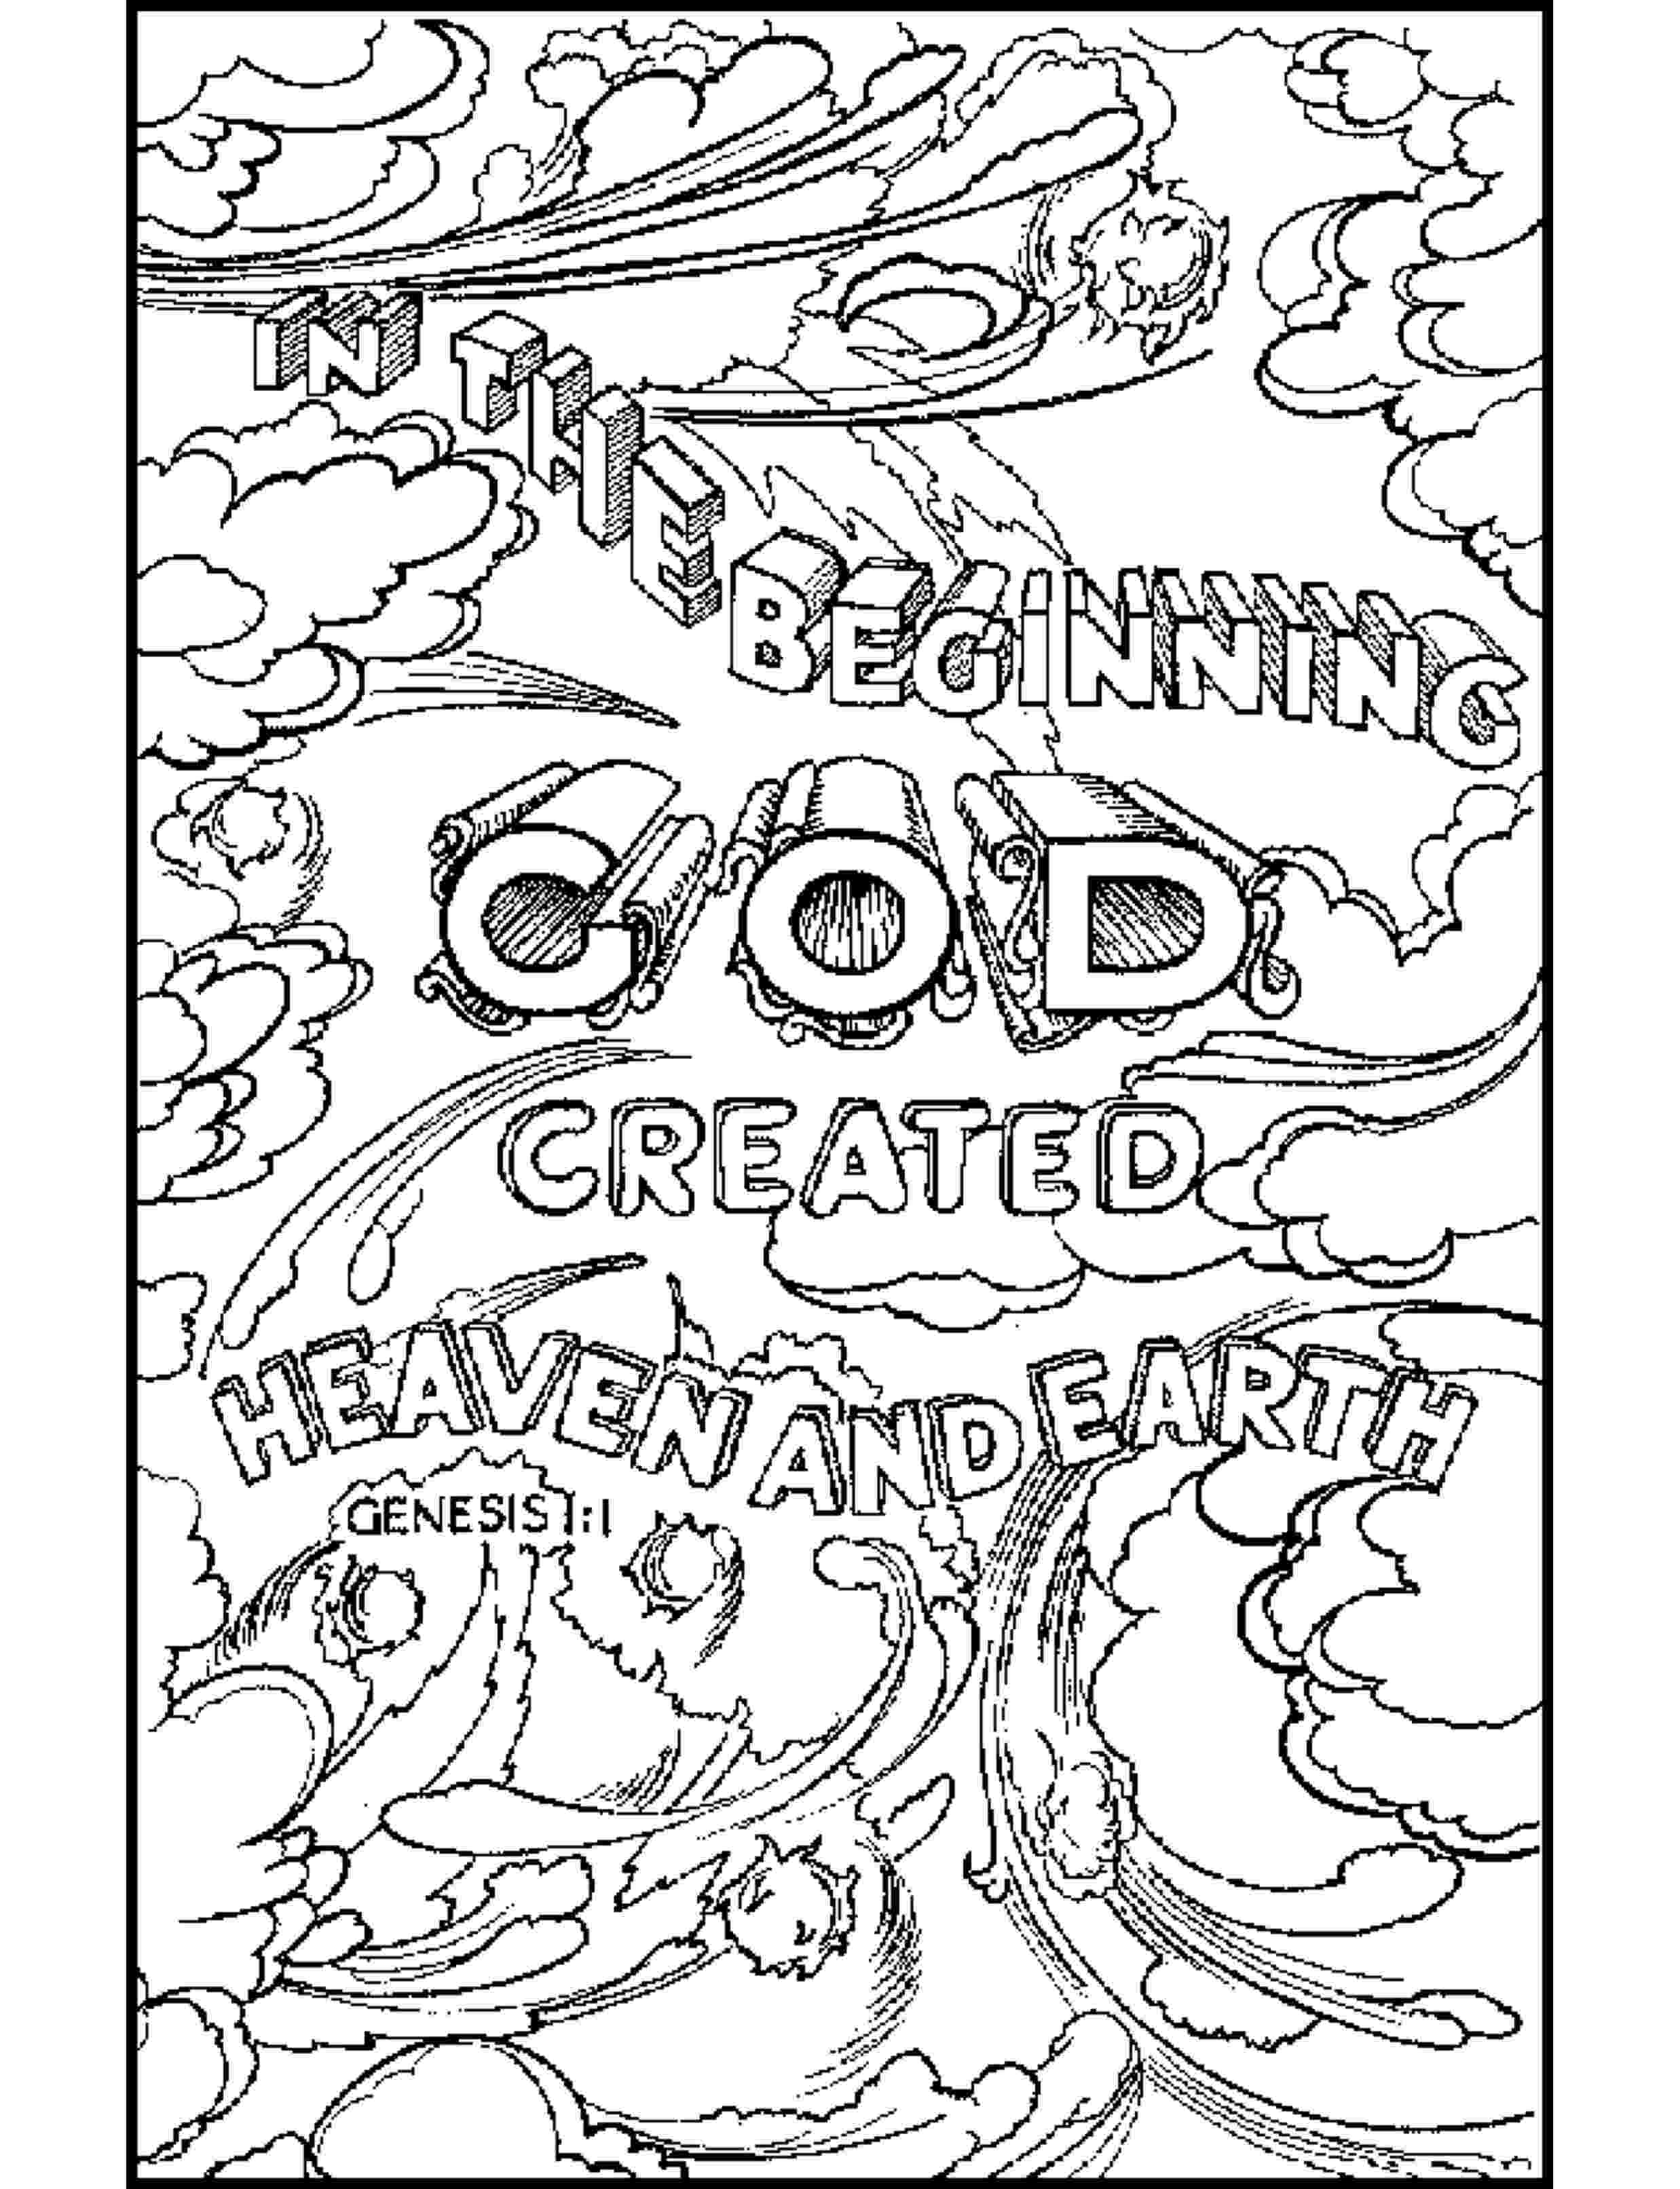 free bible coloring pages bible quote coloring pages coloring home free coloring pages bible